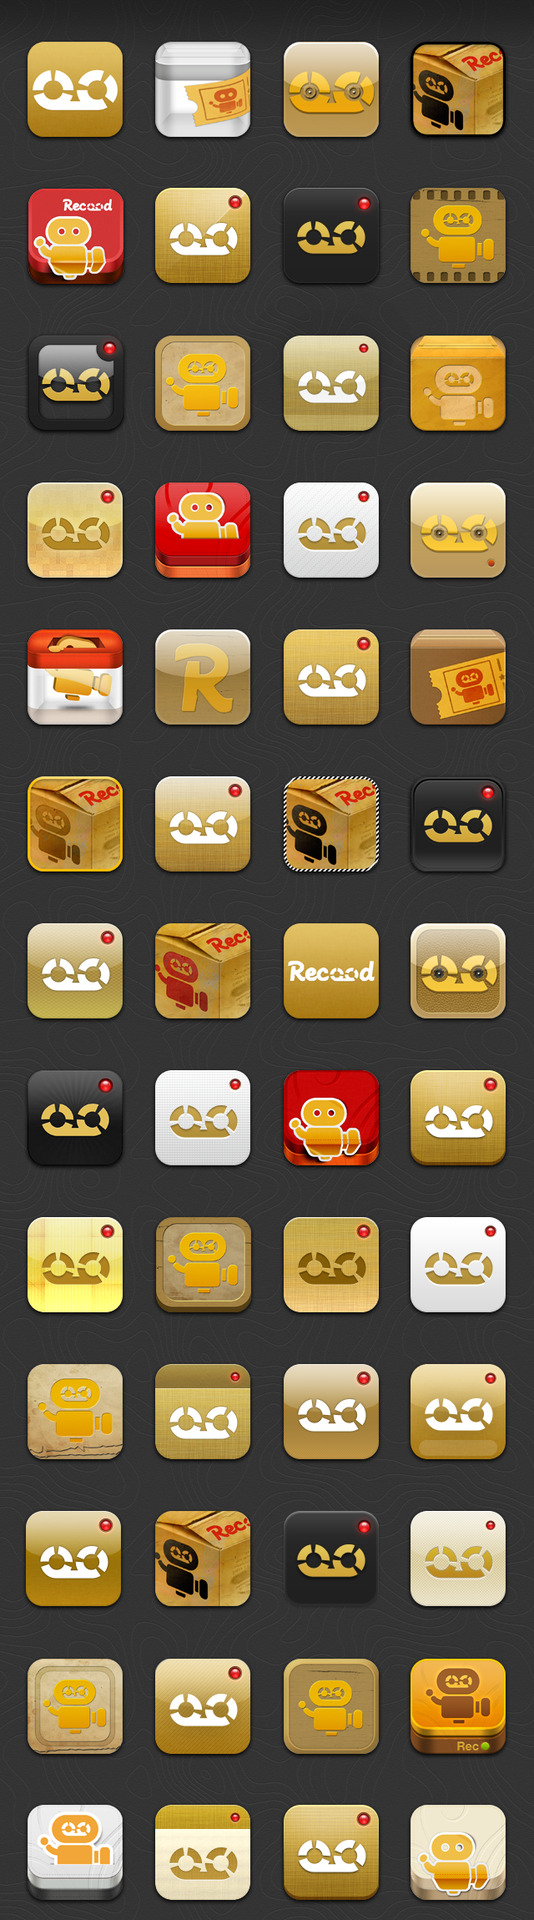 This is the list of design samples for Recood App Icon till now. The icon design did came up with so many workpieces. You can check out the final one when Recood Pro is launching in July:)  ps. @juicy you did a great job! It's so neat!